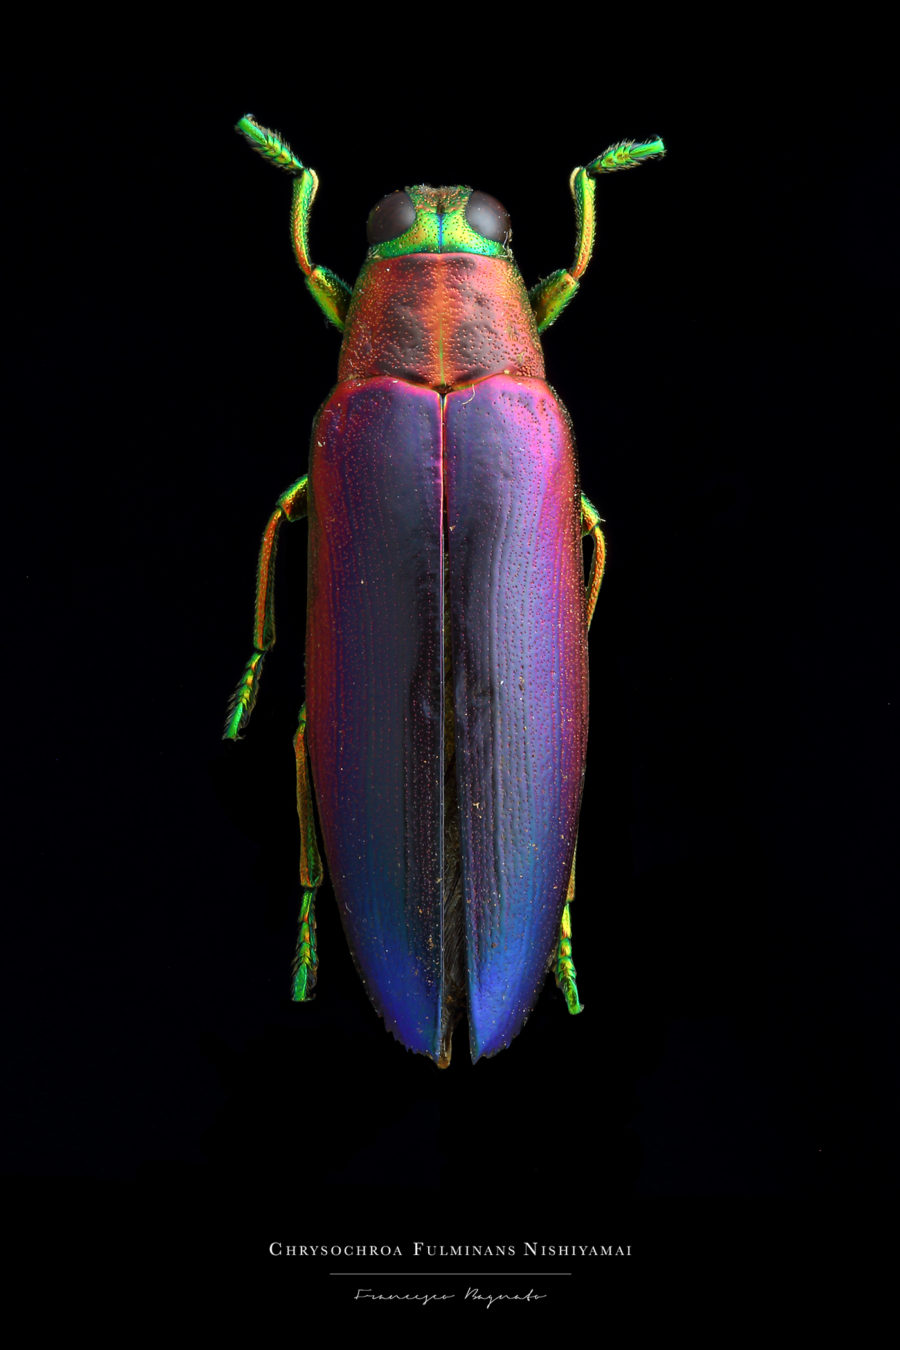 Beautiful Pictures of Colorful Insects 4 Beautiful Pictures of Colorful Insects